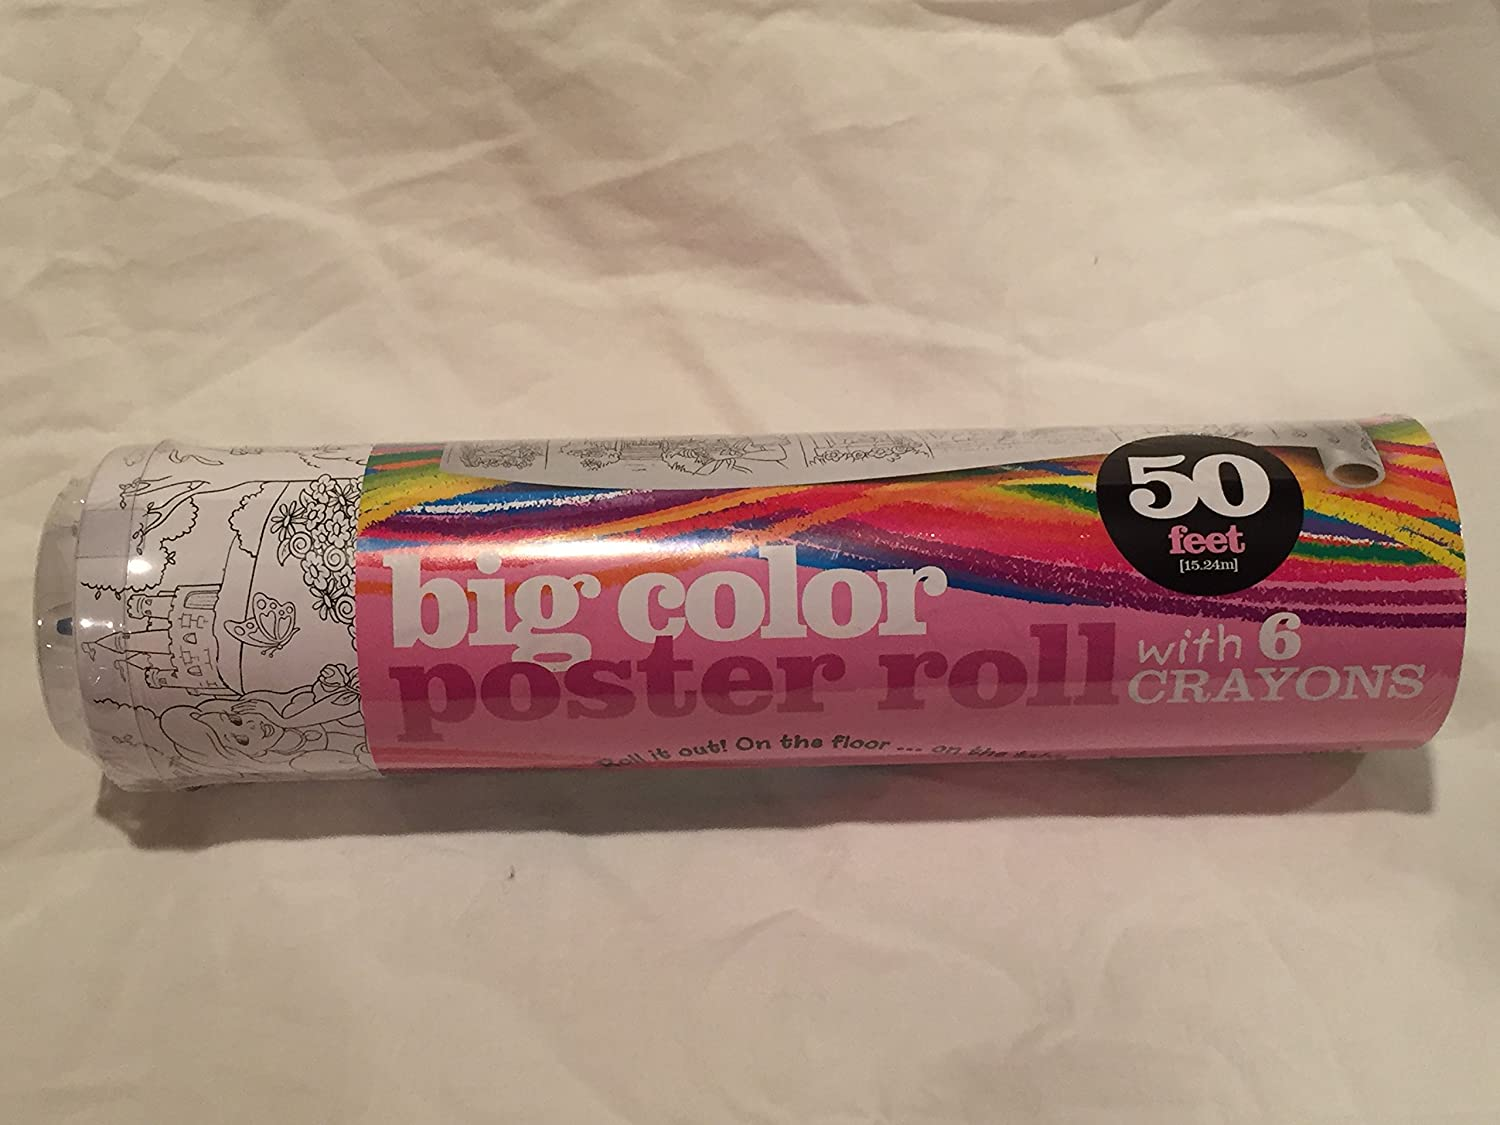 Big Color Princess Poster Roll 50 Feet Long with 6 Crayons